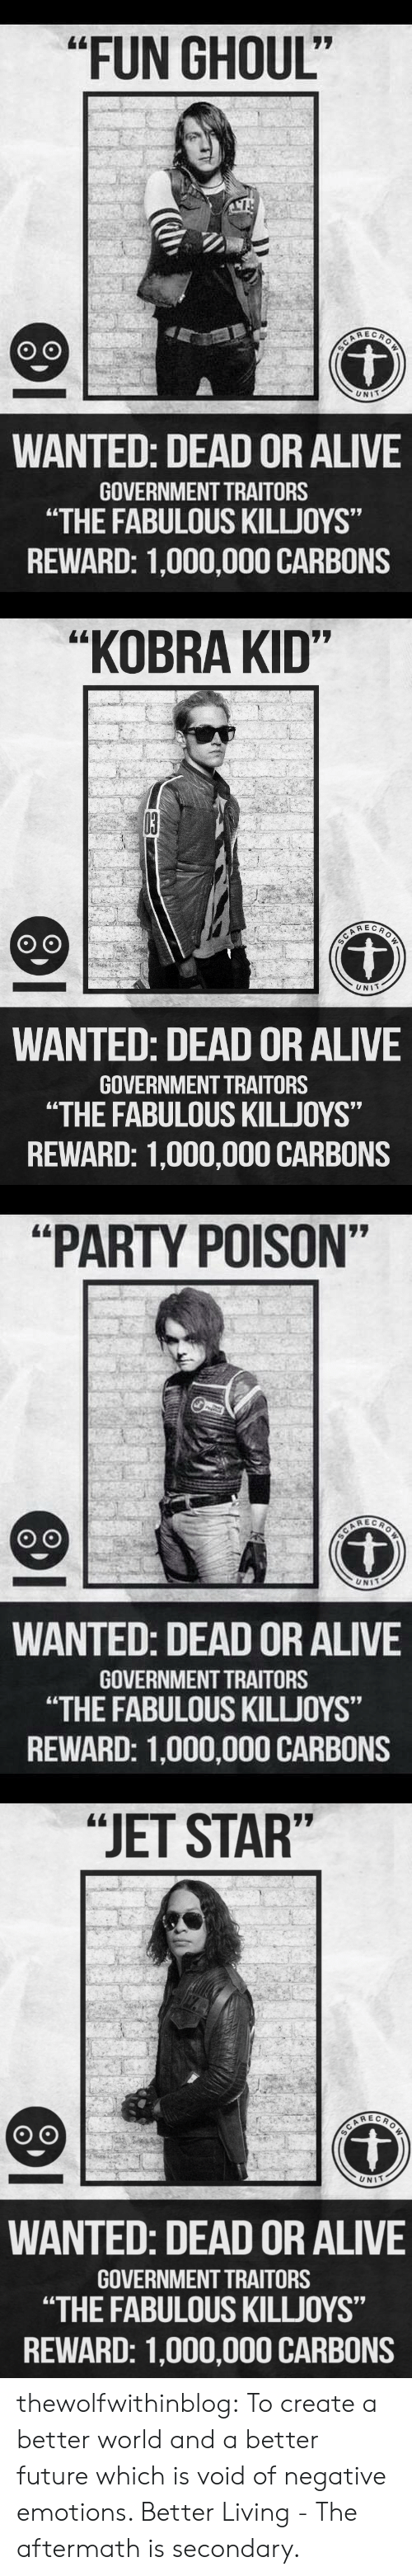 "Alive, Dead or Alive, and Future: ""FUN GHOUL""  REC  UNIT  WANTED: DEAD OR ALIVE  GOVERNMENT TRAITORS  ""THE FABULOUS KILLJOYS""  REWARD: 1,000,000 CARBONS   ""KOBRA KID""  UNIT  WANTED: DEAD OR ALIVE  GOVERNMENT TRAITORS  ""THE FABULOUS KILLJOYS""  REWARD: 1,000,000 CARBONS   ""PARTY POISON""  UNIT  WANTED: DEAD OR ALIVE  GOVERNMENT TRAITORS  ""THE FABULOUS KILLUOYS""  REWARD: 1,000,000 CARBONS   ""JET STAR""  UNIT  WANTED: DEAD OR ALIVE  GOVERNMENT TRAITORS  ""THE FABULOUS KILLJOYS""  REWARD: 1,000,000 CARBONS thewolfwithinblog: To create a better world and a better future which is void of negative emotions.   Better Living - The aftermath is secondary."